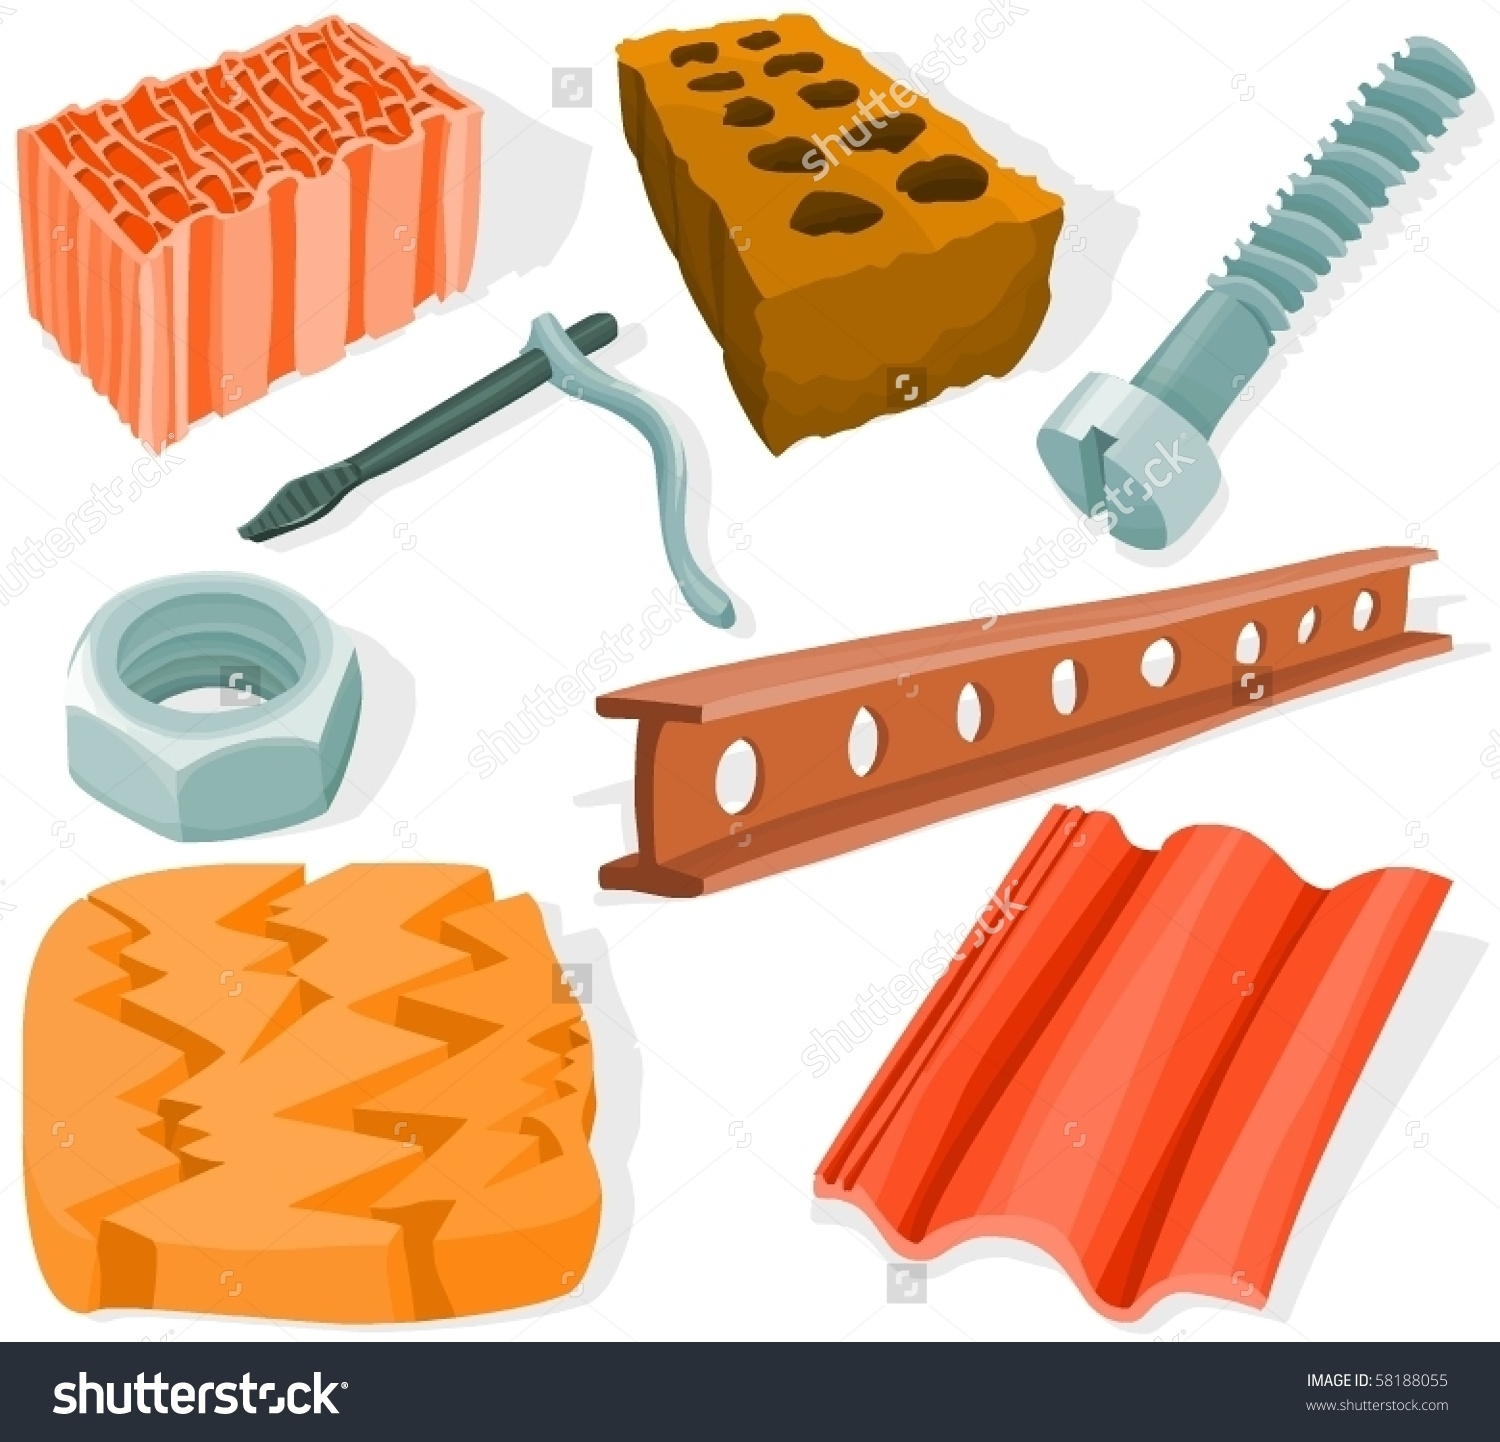 Building materials clipart 12 » Clipart Station.